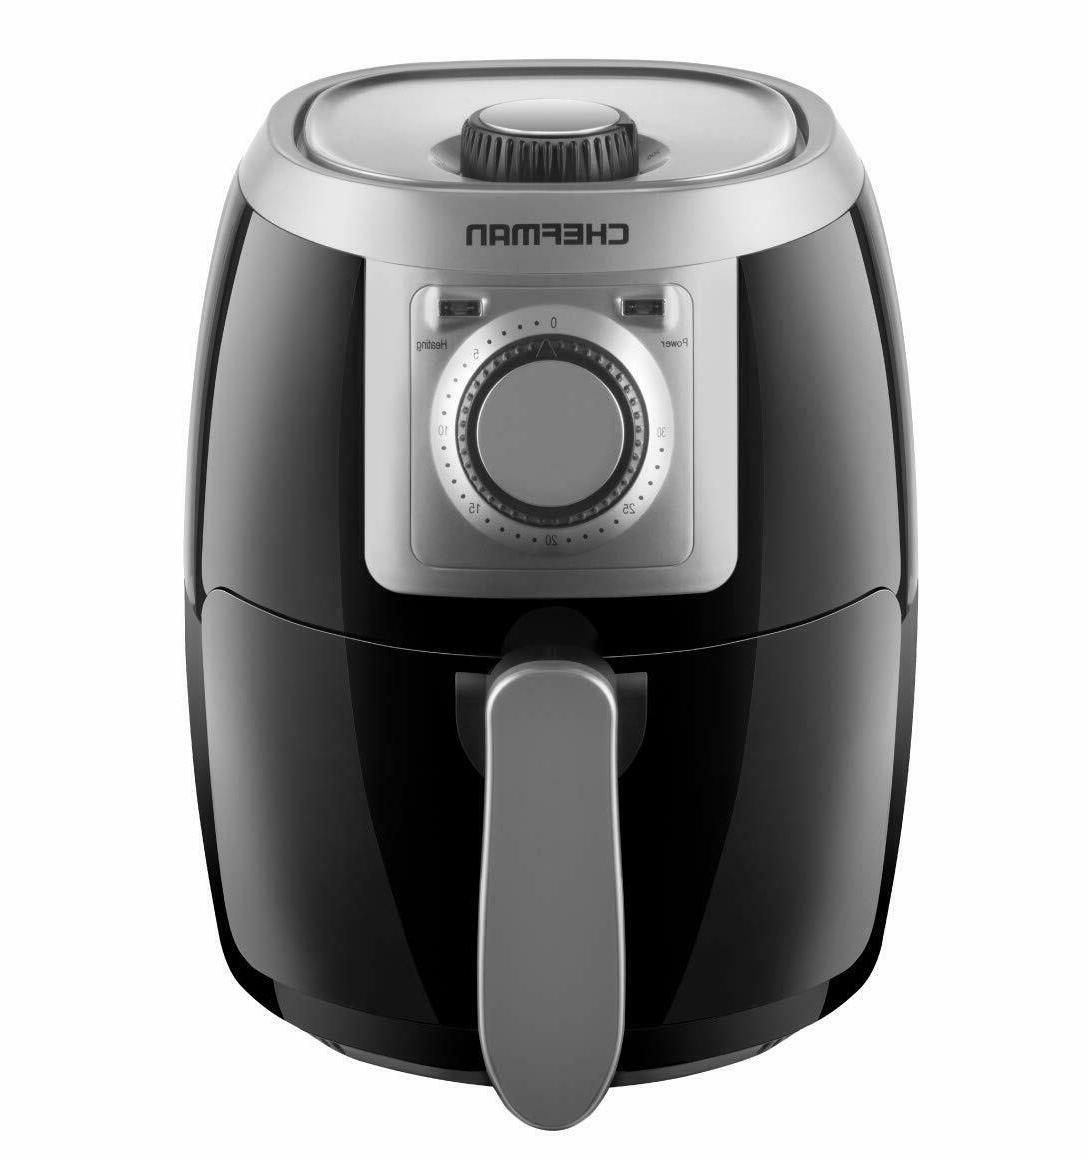 Chefman TurboFry 2 Liter Air Fryer, Personal Compact Healthy